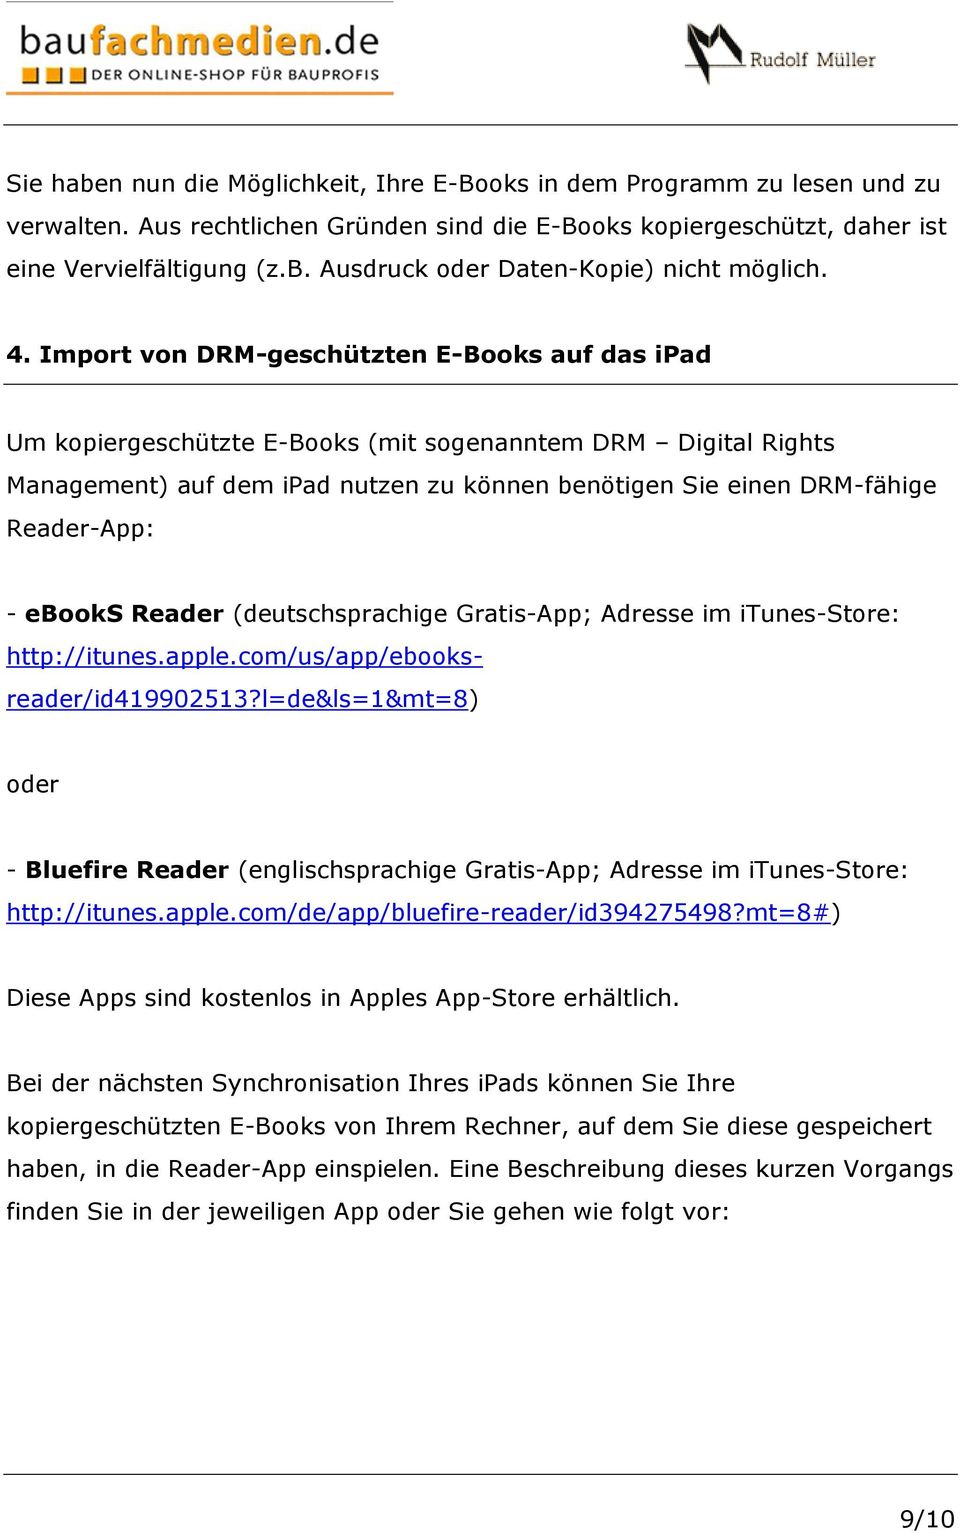 - ebooks Reader (deutschsprachige Gratis-App; Adresse im itunes-store: http://itunes.apple.com/us/app/ebooksreader/id419902513?